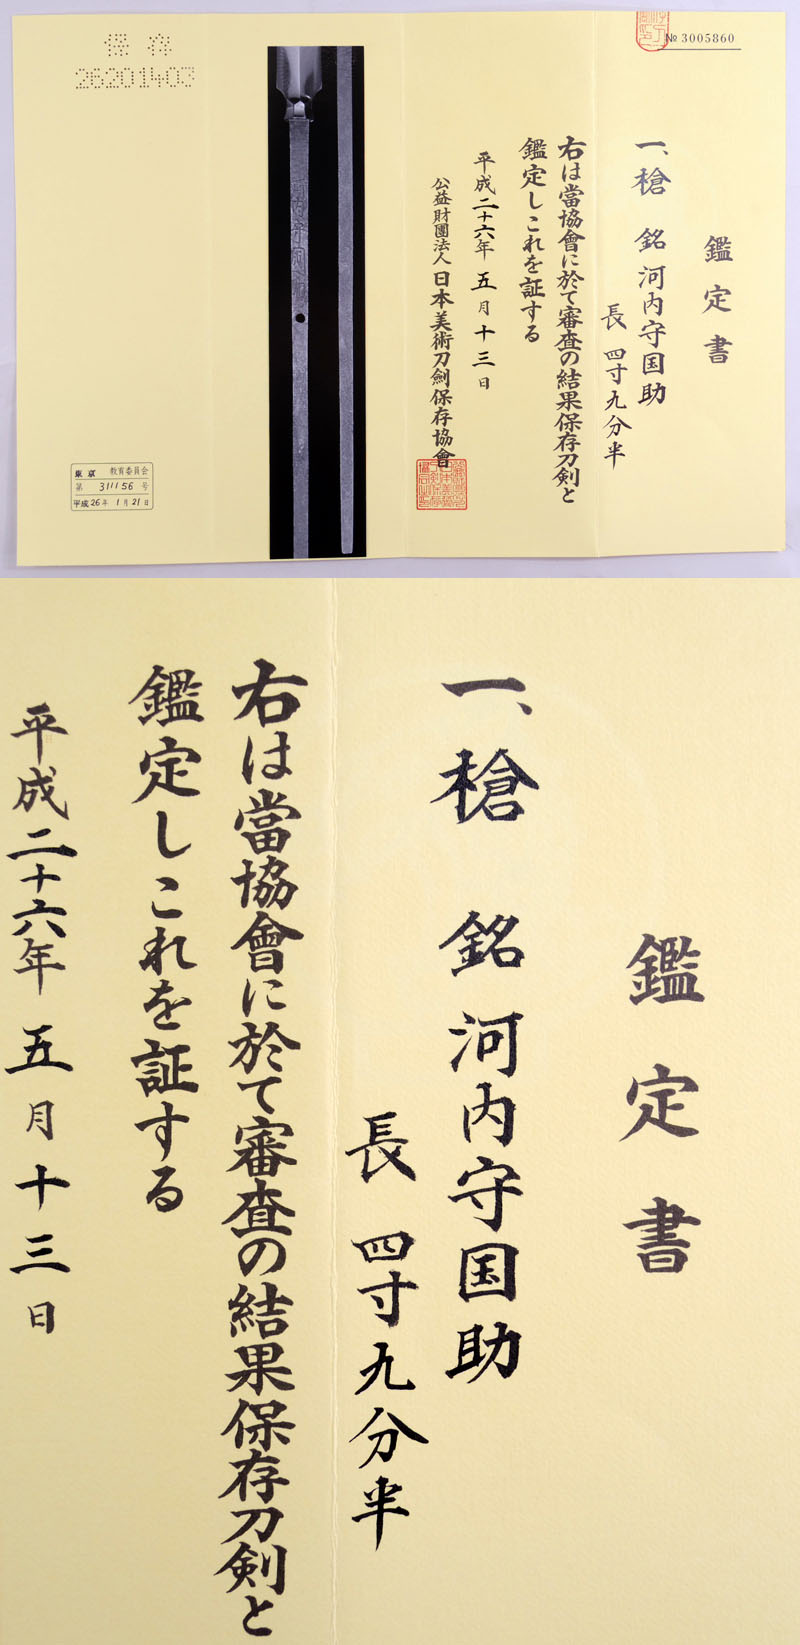 河内守国助(二代) Picture of Certificate